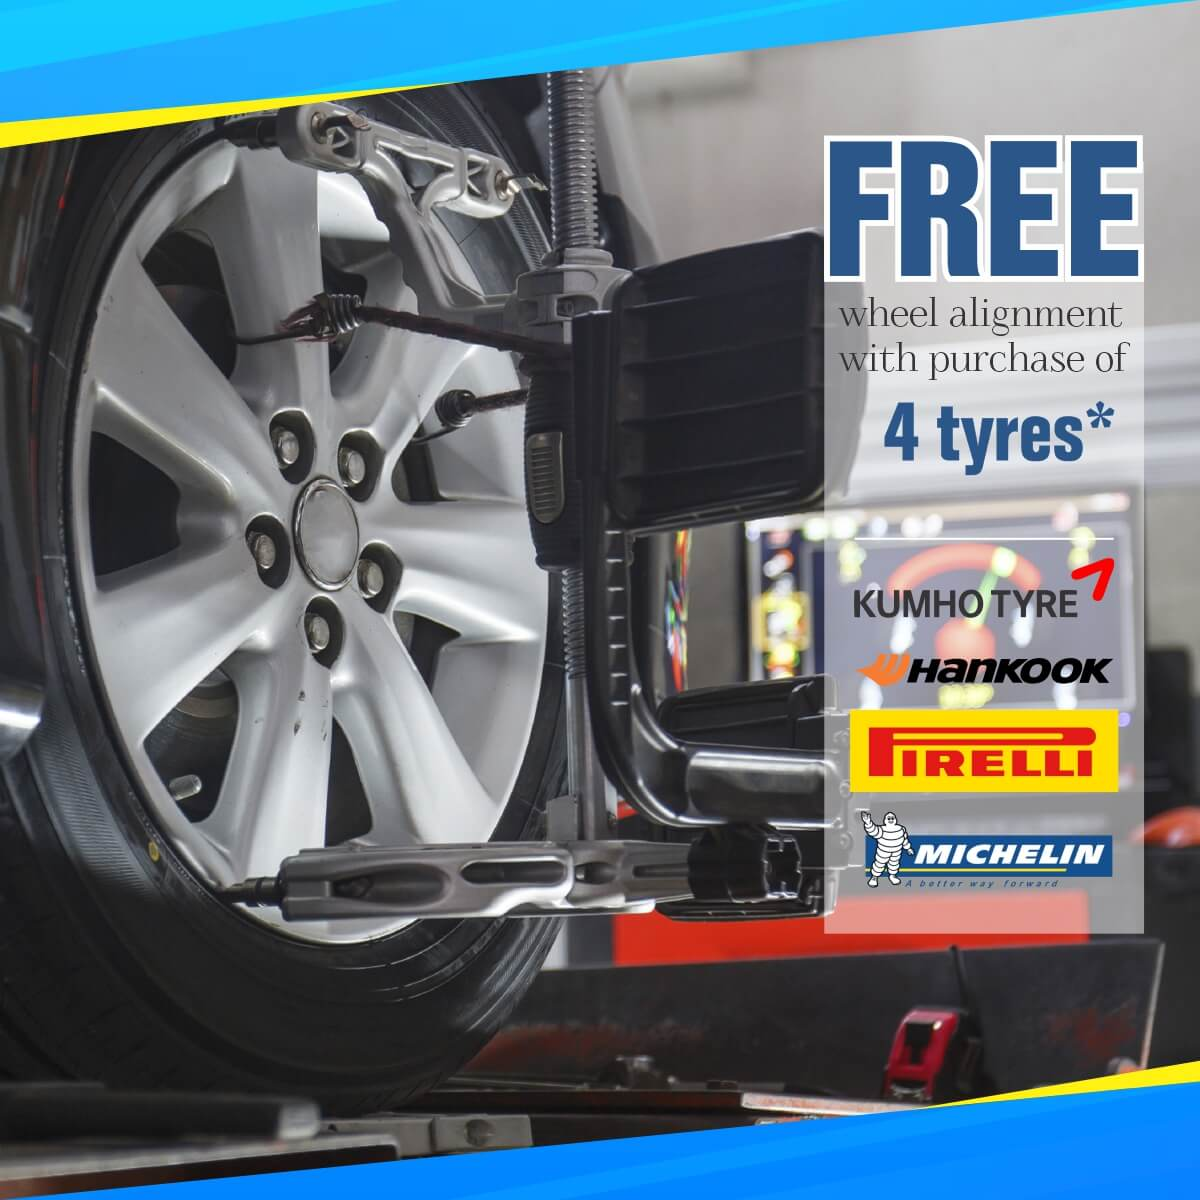 Free wheel alignment with purchase of 4 tyres